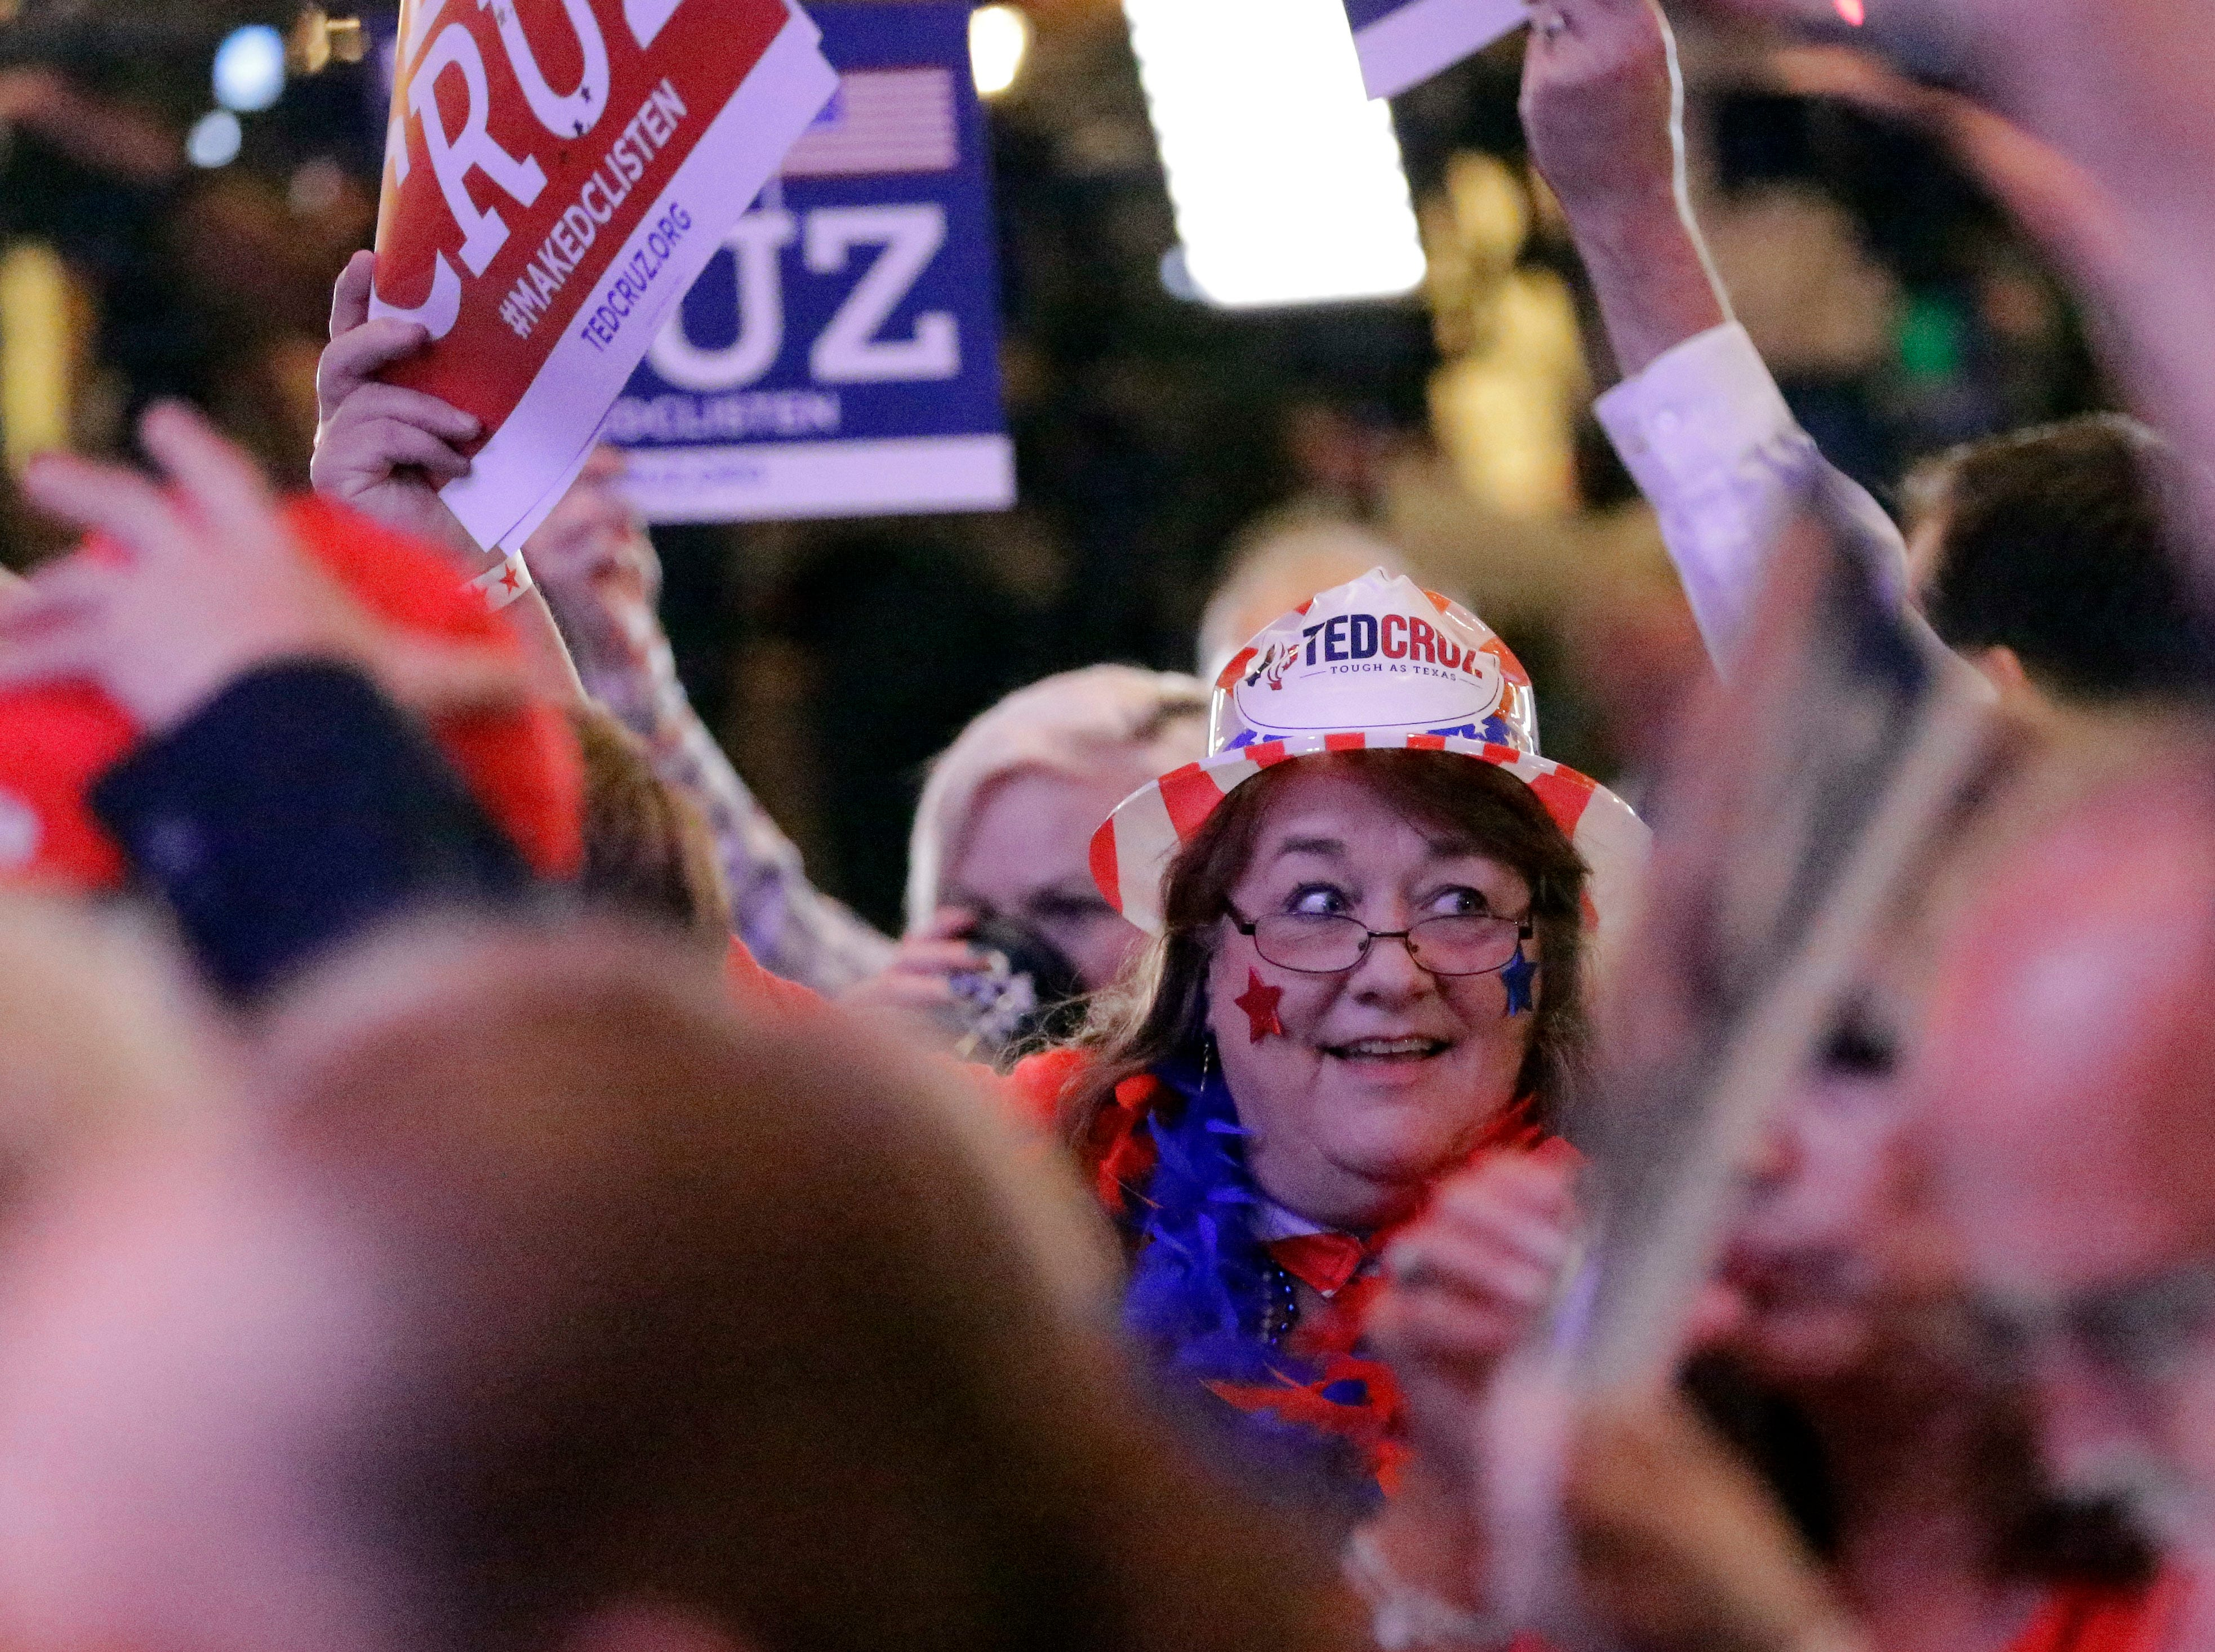 Supporters cheer during an election night party for Sen. Ted Cruz, R-Texas, Tuesday, Nov. 6, 2018, in Houston. (AP Photo/David J. Phillip)